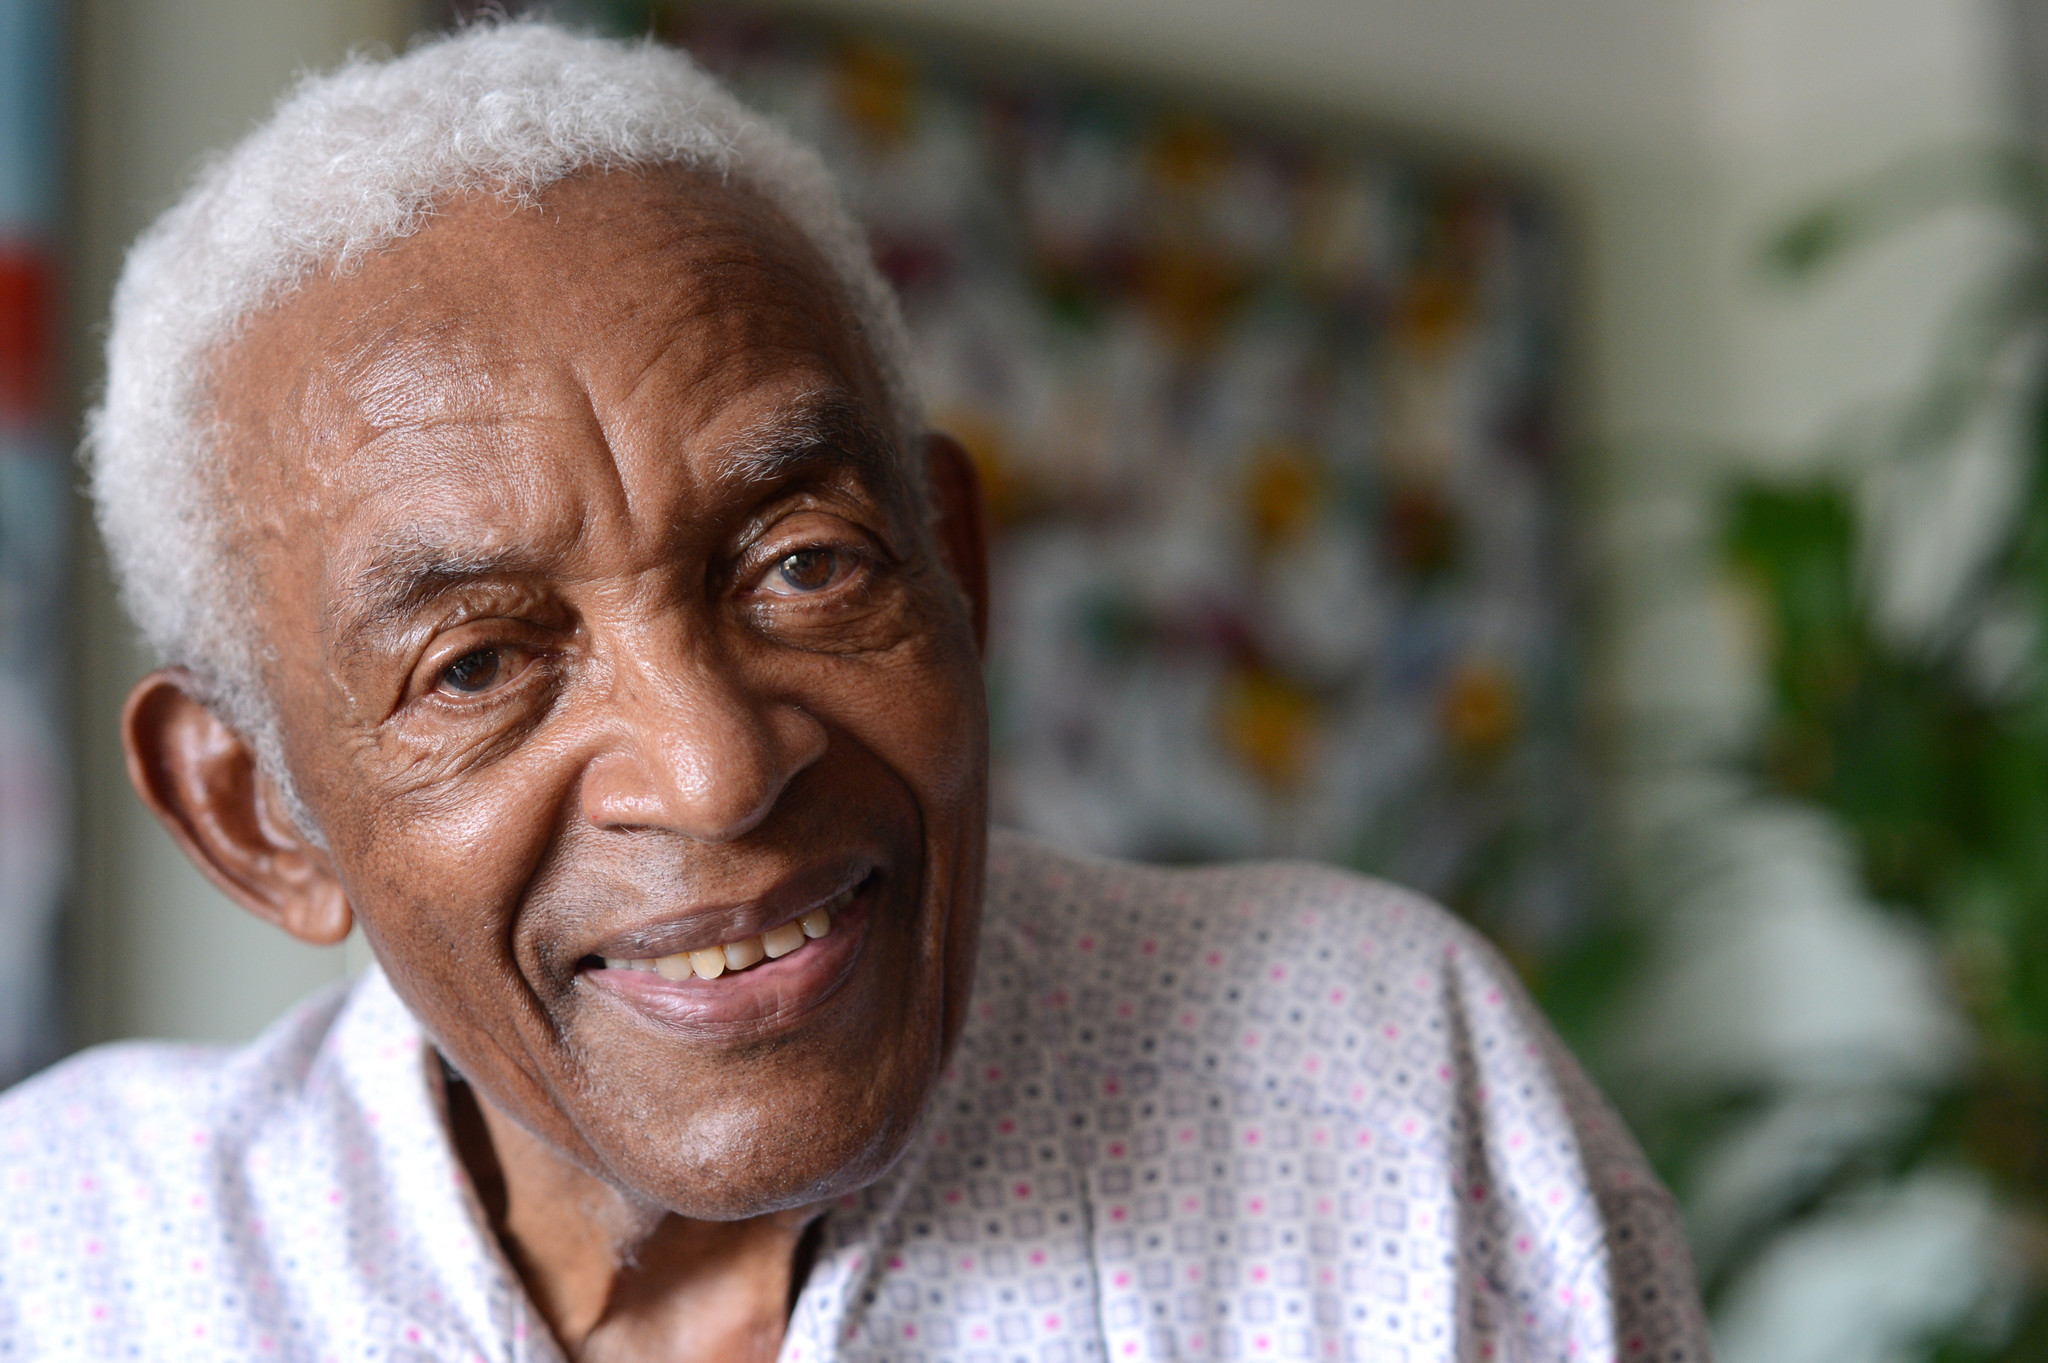 CARIBBEAT: Celebrating 'Day-O' songwriter Irving Burgie and his 95 years of successes